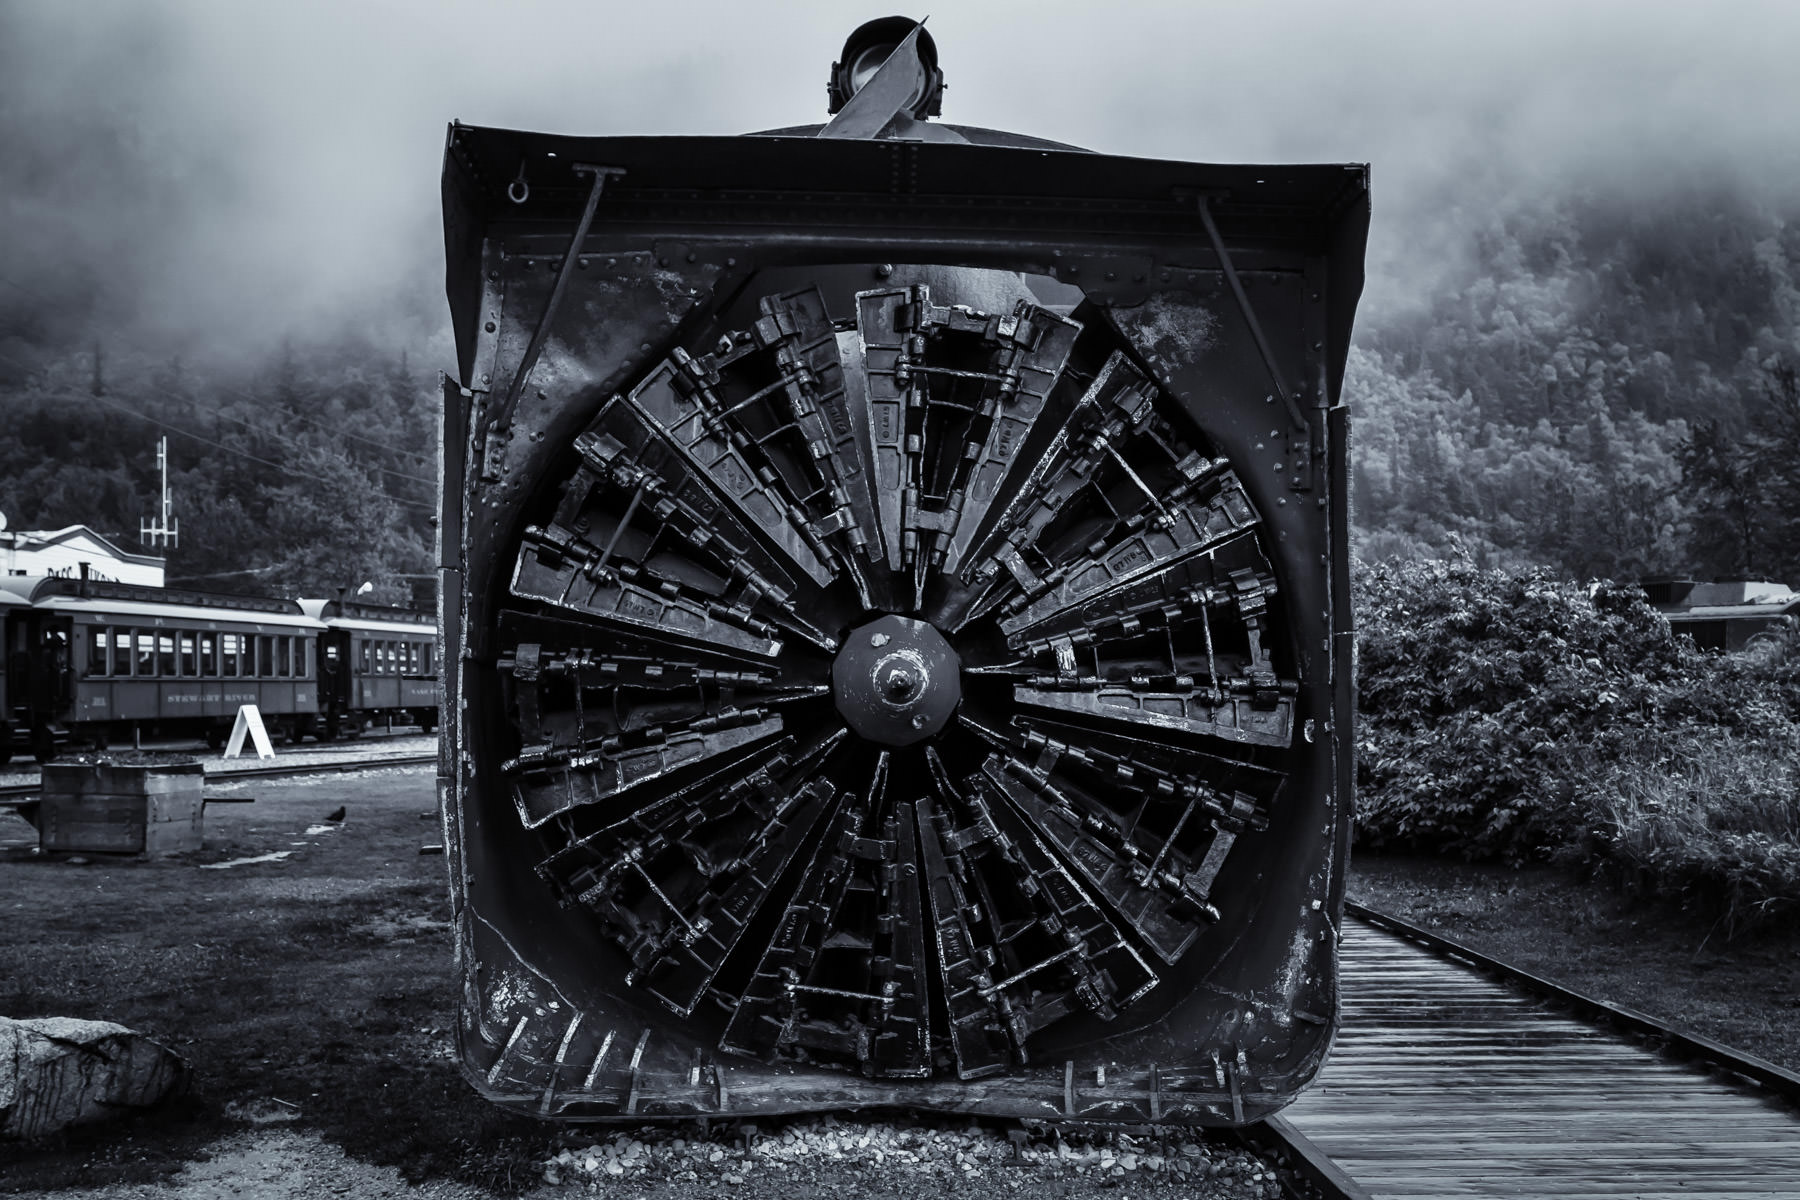 The rotary snow plow on the engine of the White Pass & Yukon Route Railway on a wet, misty morning in Skagway, Alaska.